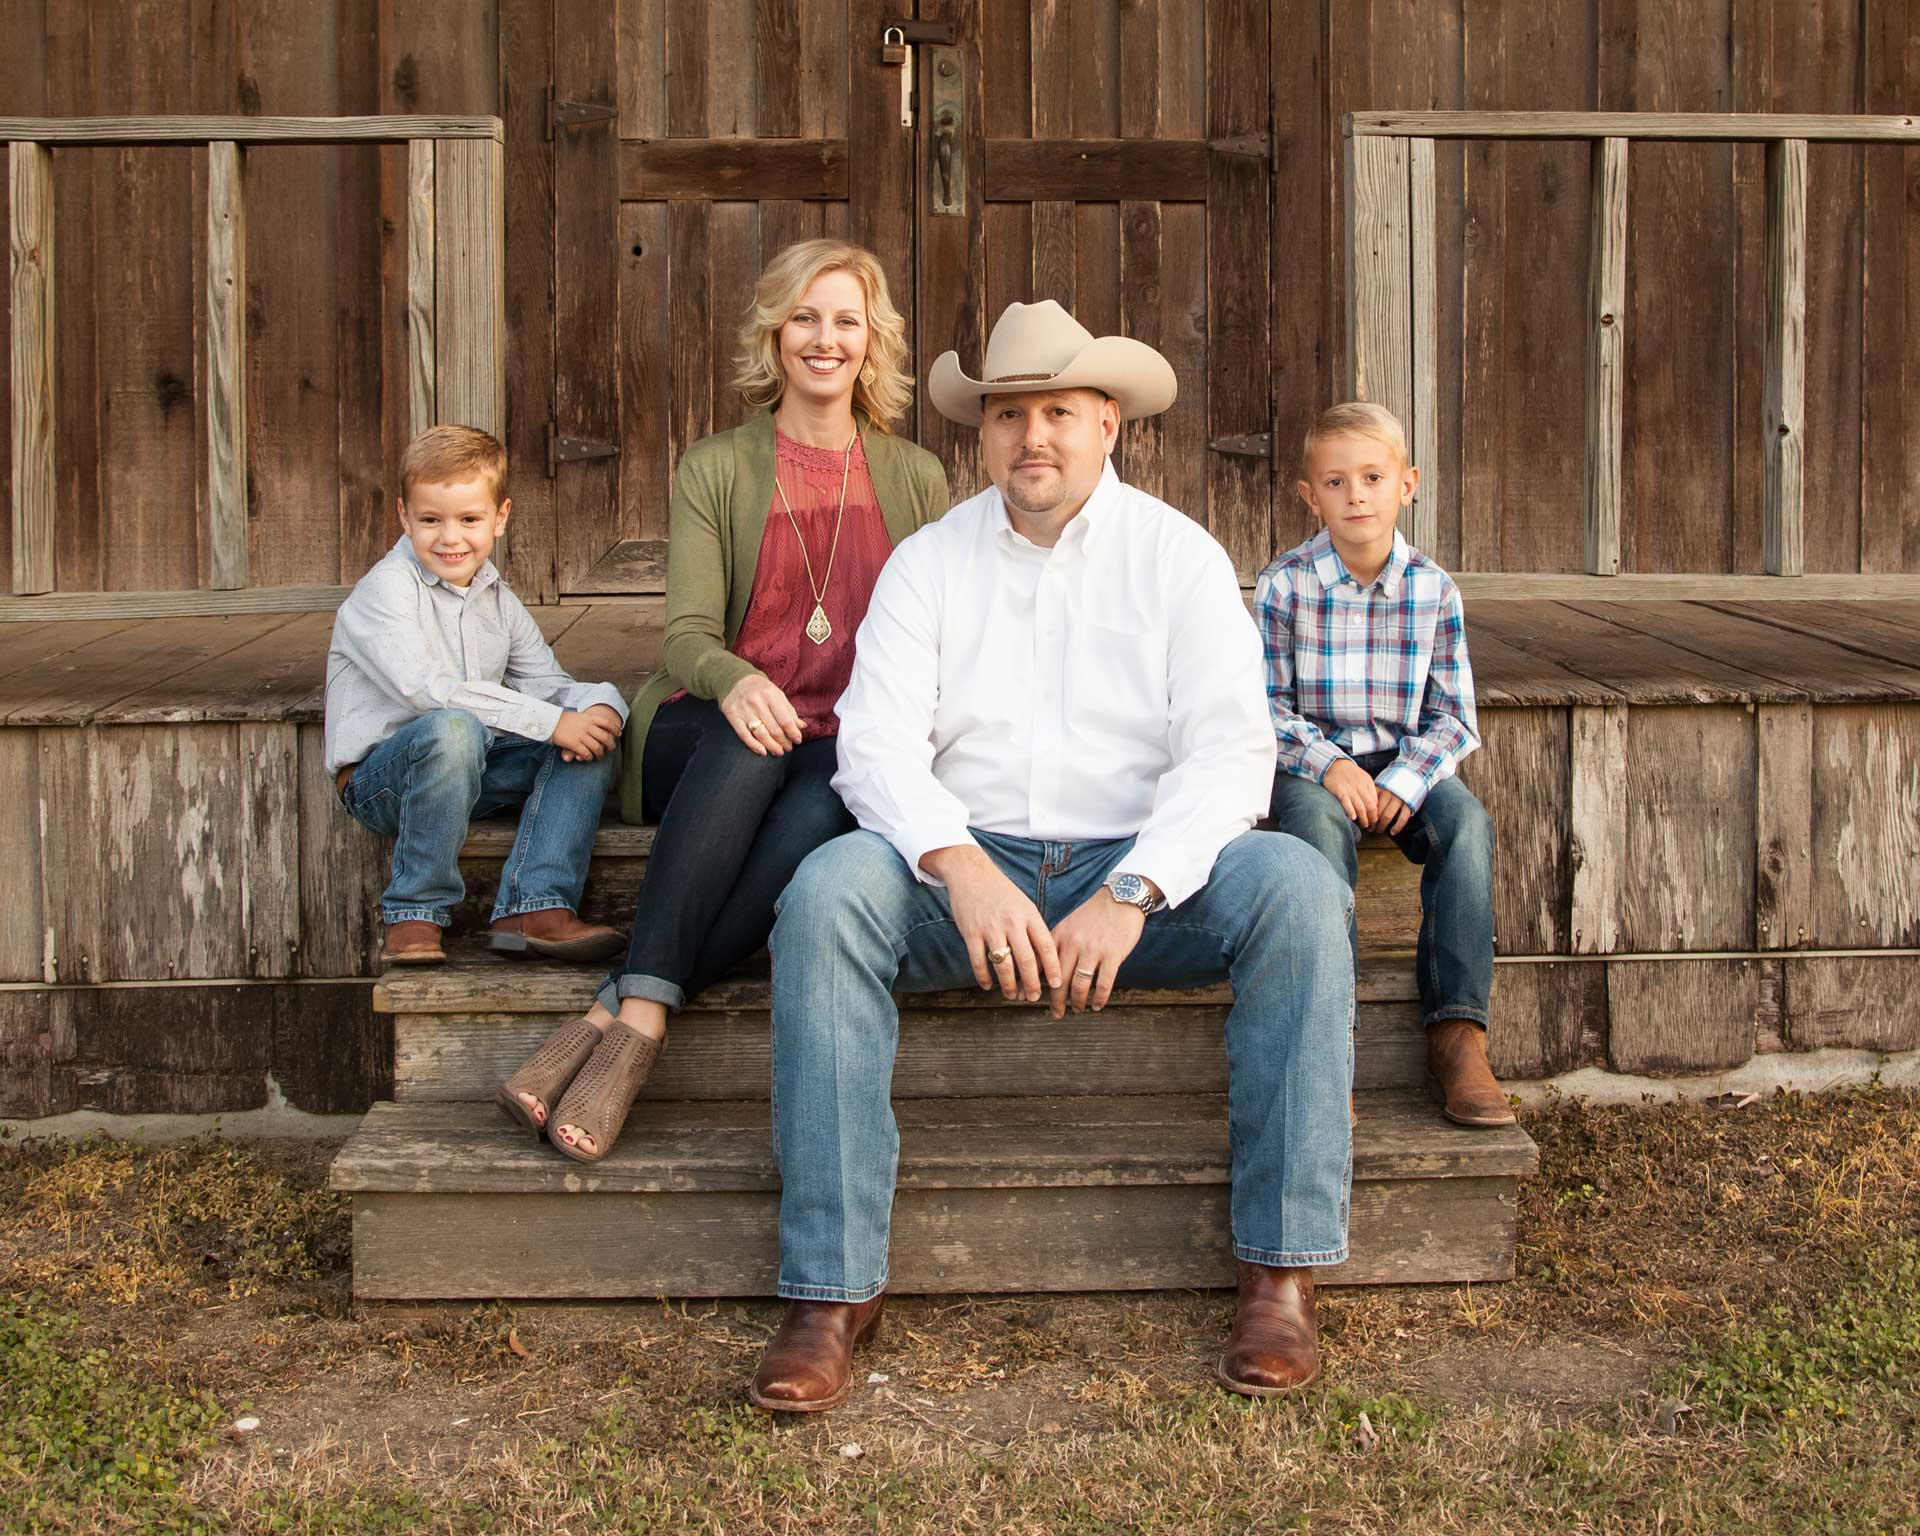 Photo of Trent Nichols with his wife and 2 young boys